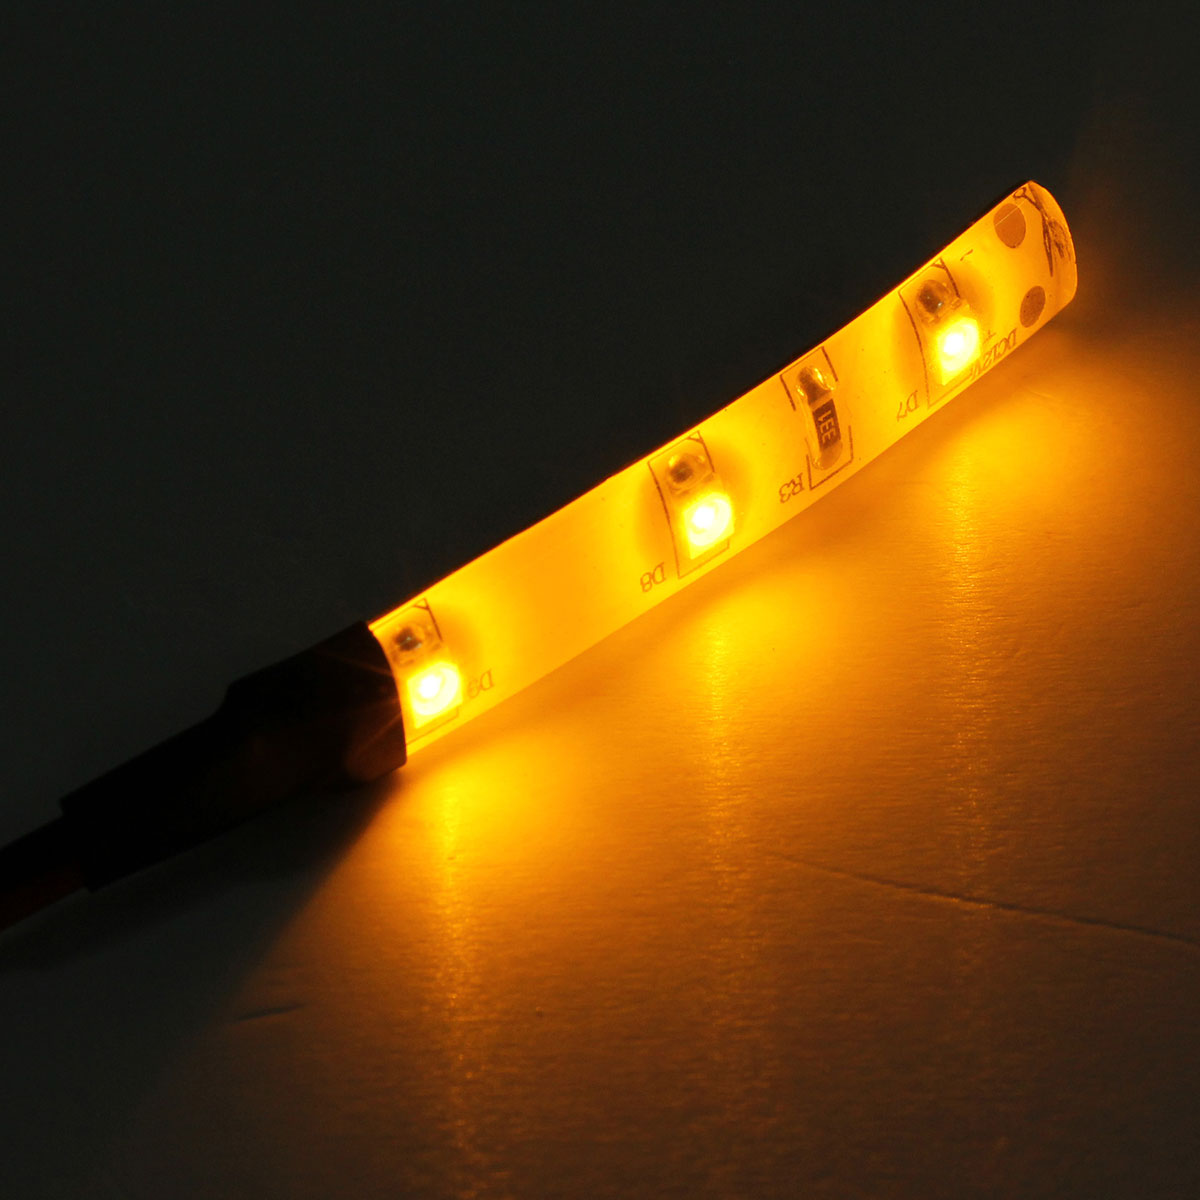 12v 3528 smd 3 led diy strip light for car cup holder glove box foot area yellow lazada malaysia. Black Bedroom Furniture Sets. Home Design Ideas